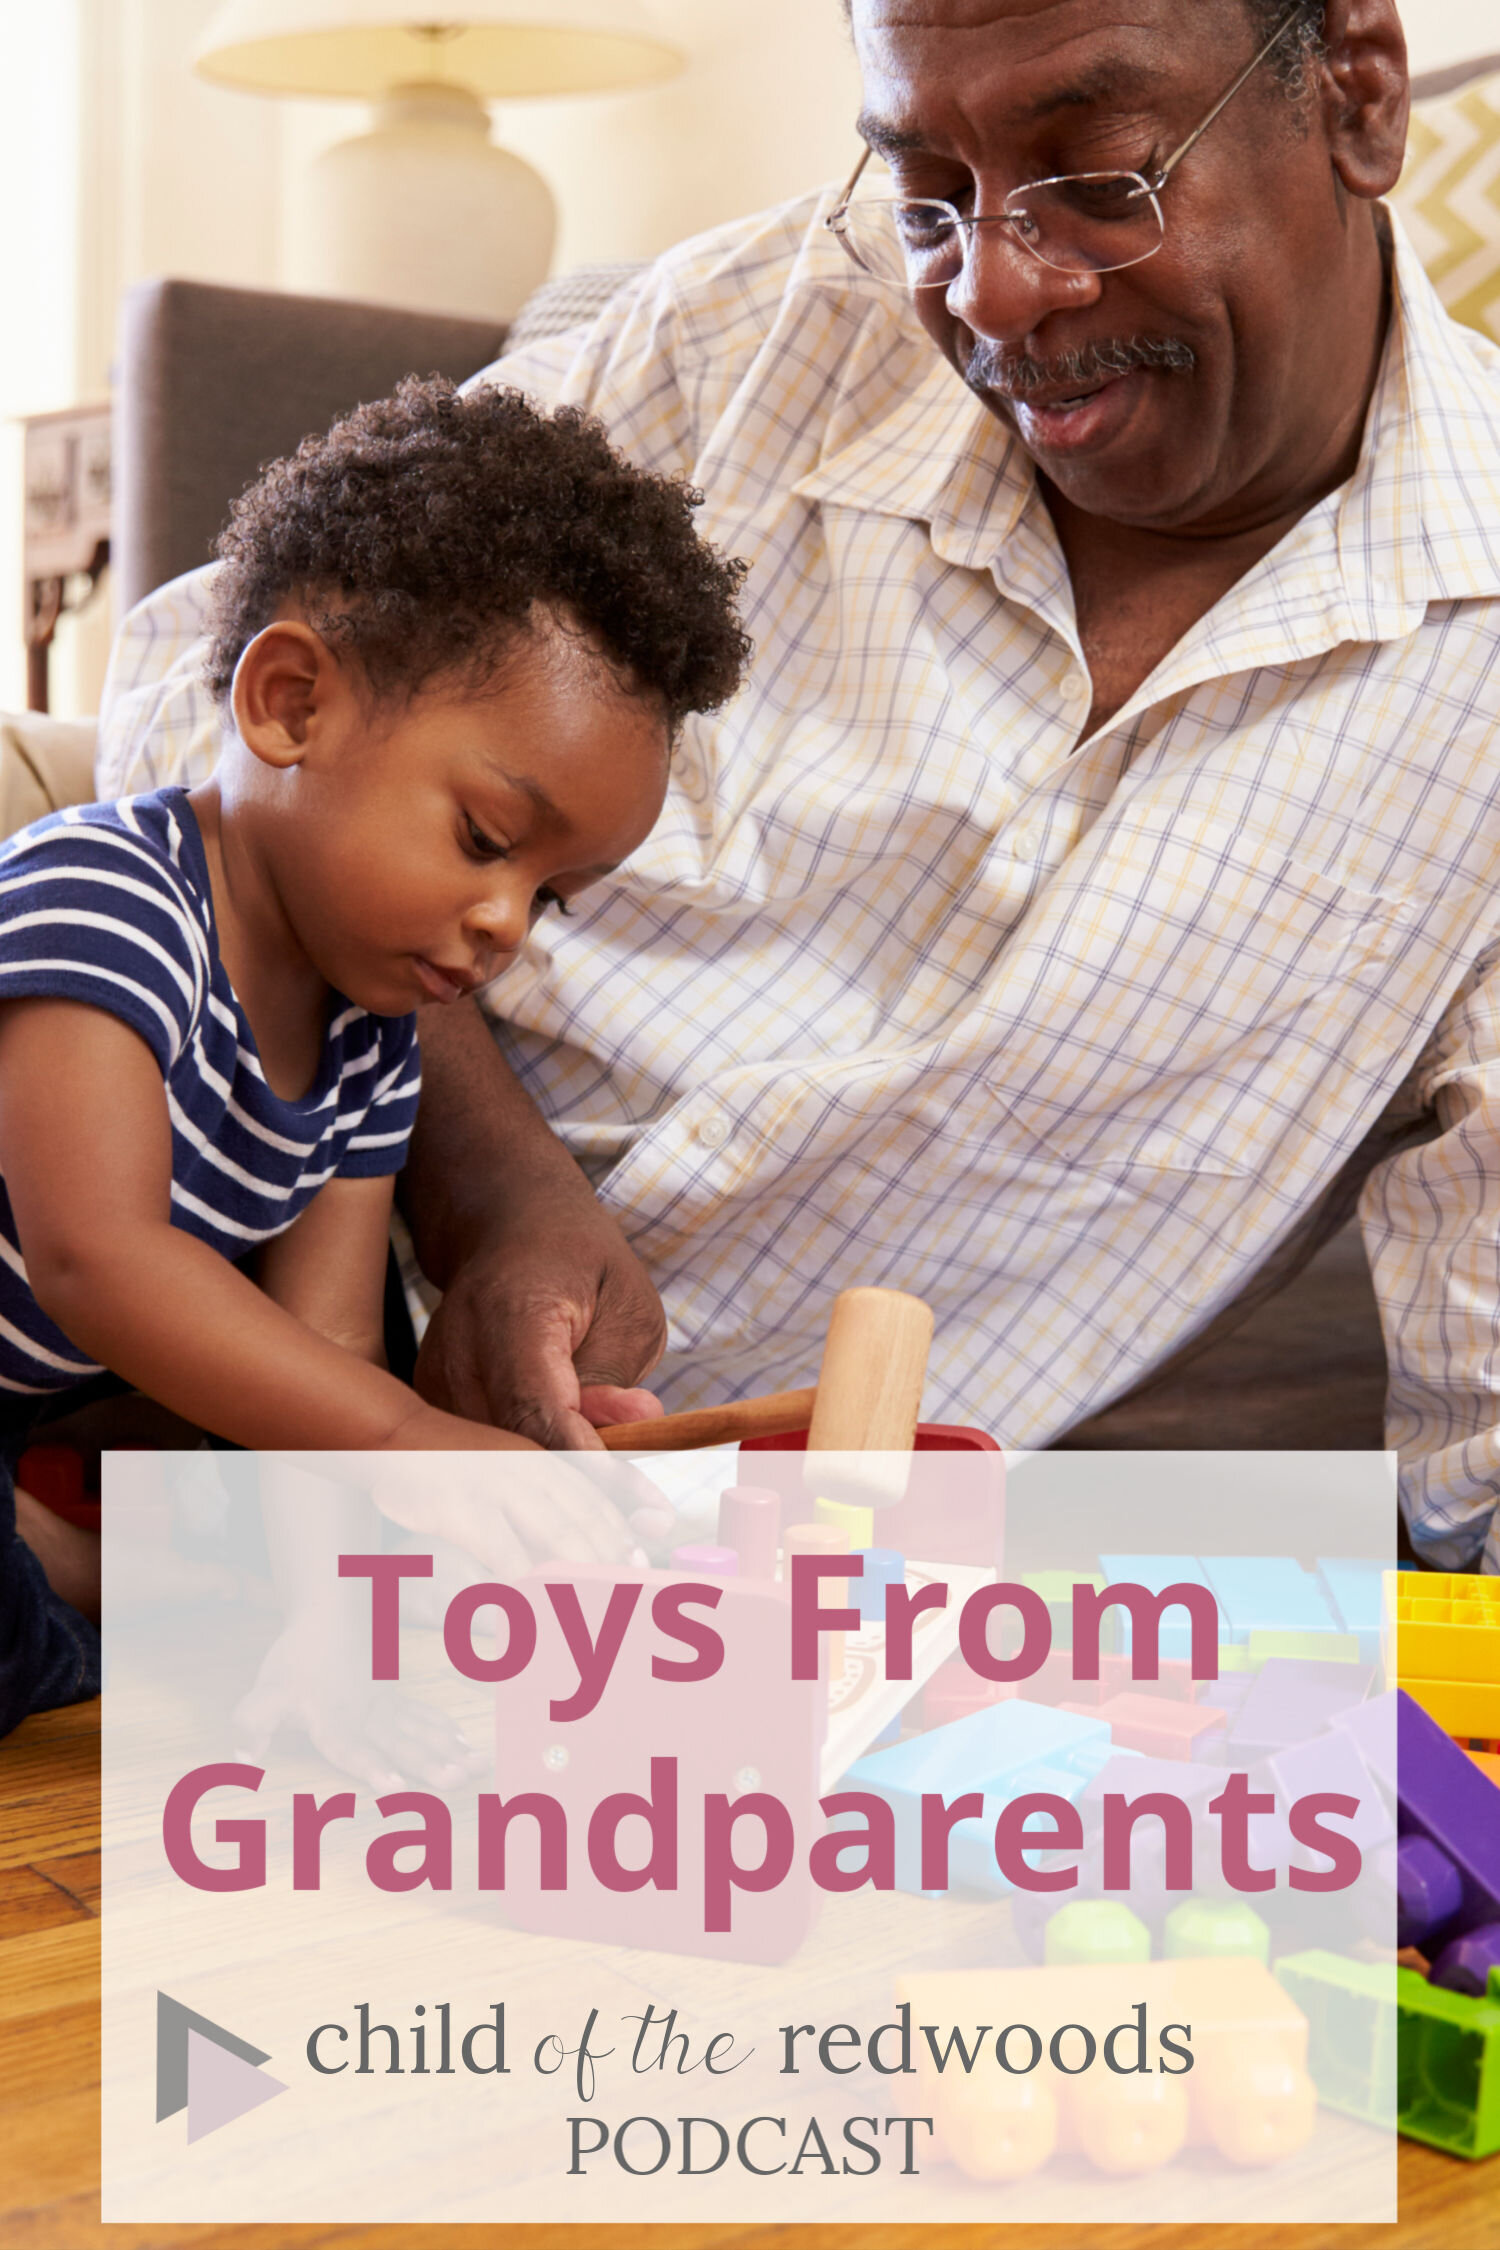 Toys From Grandparents Podcast